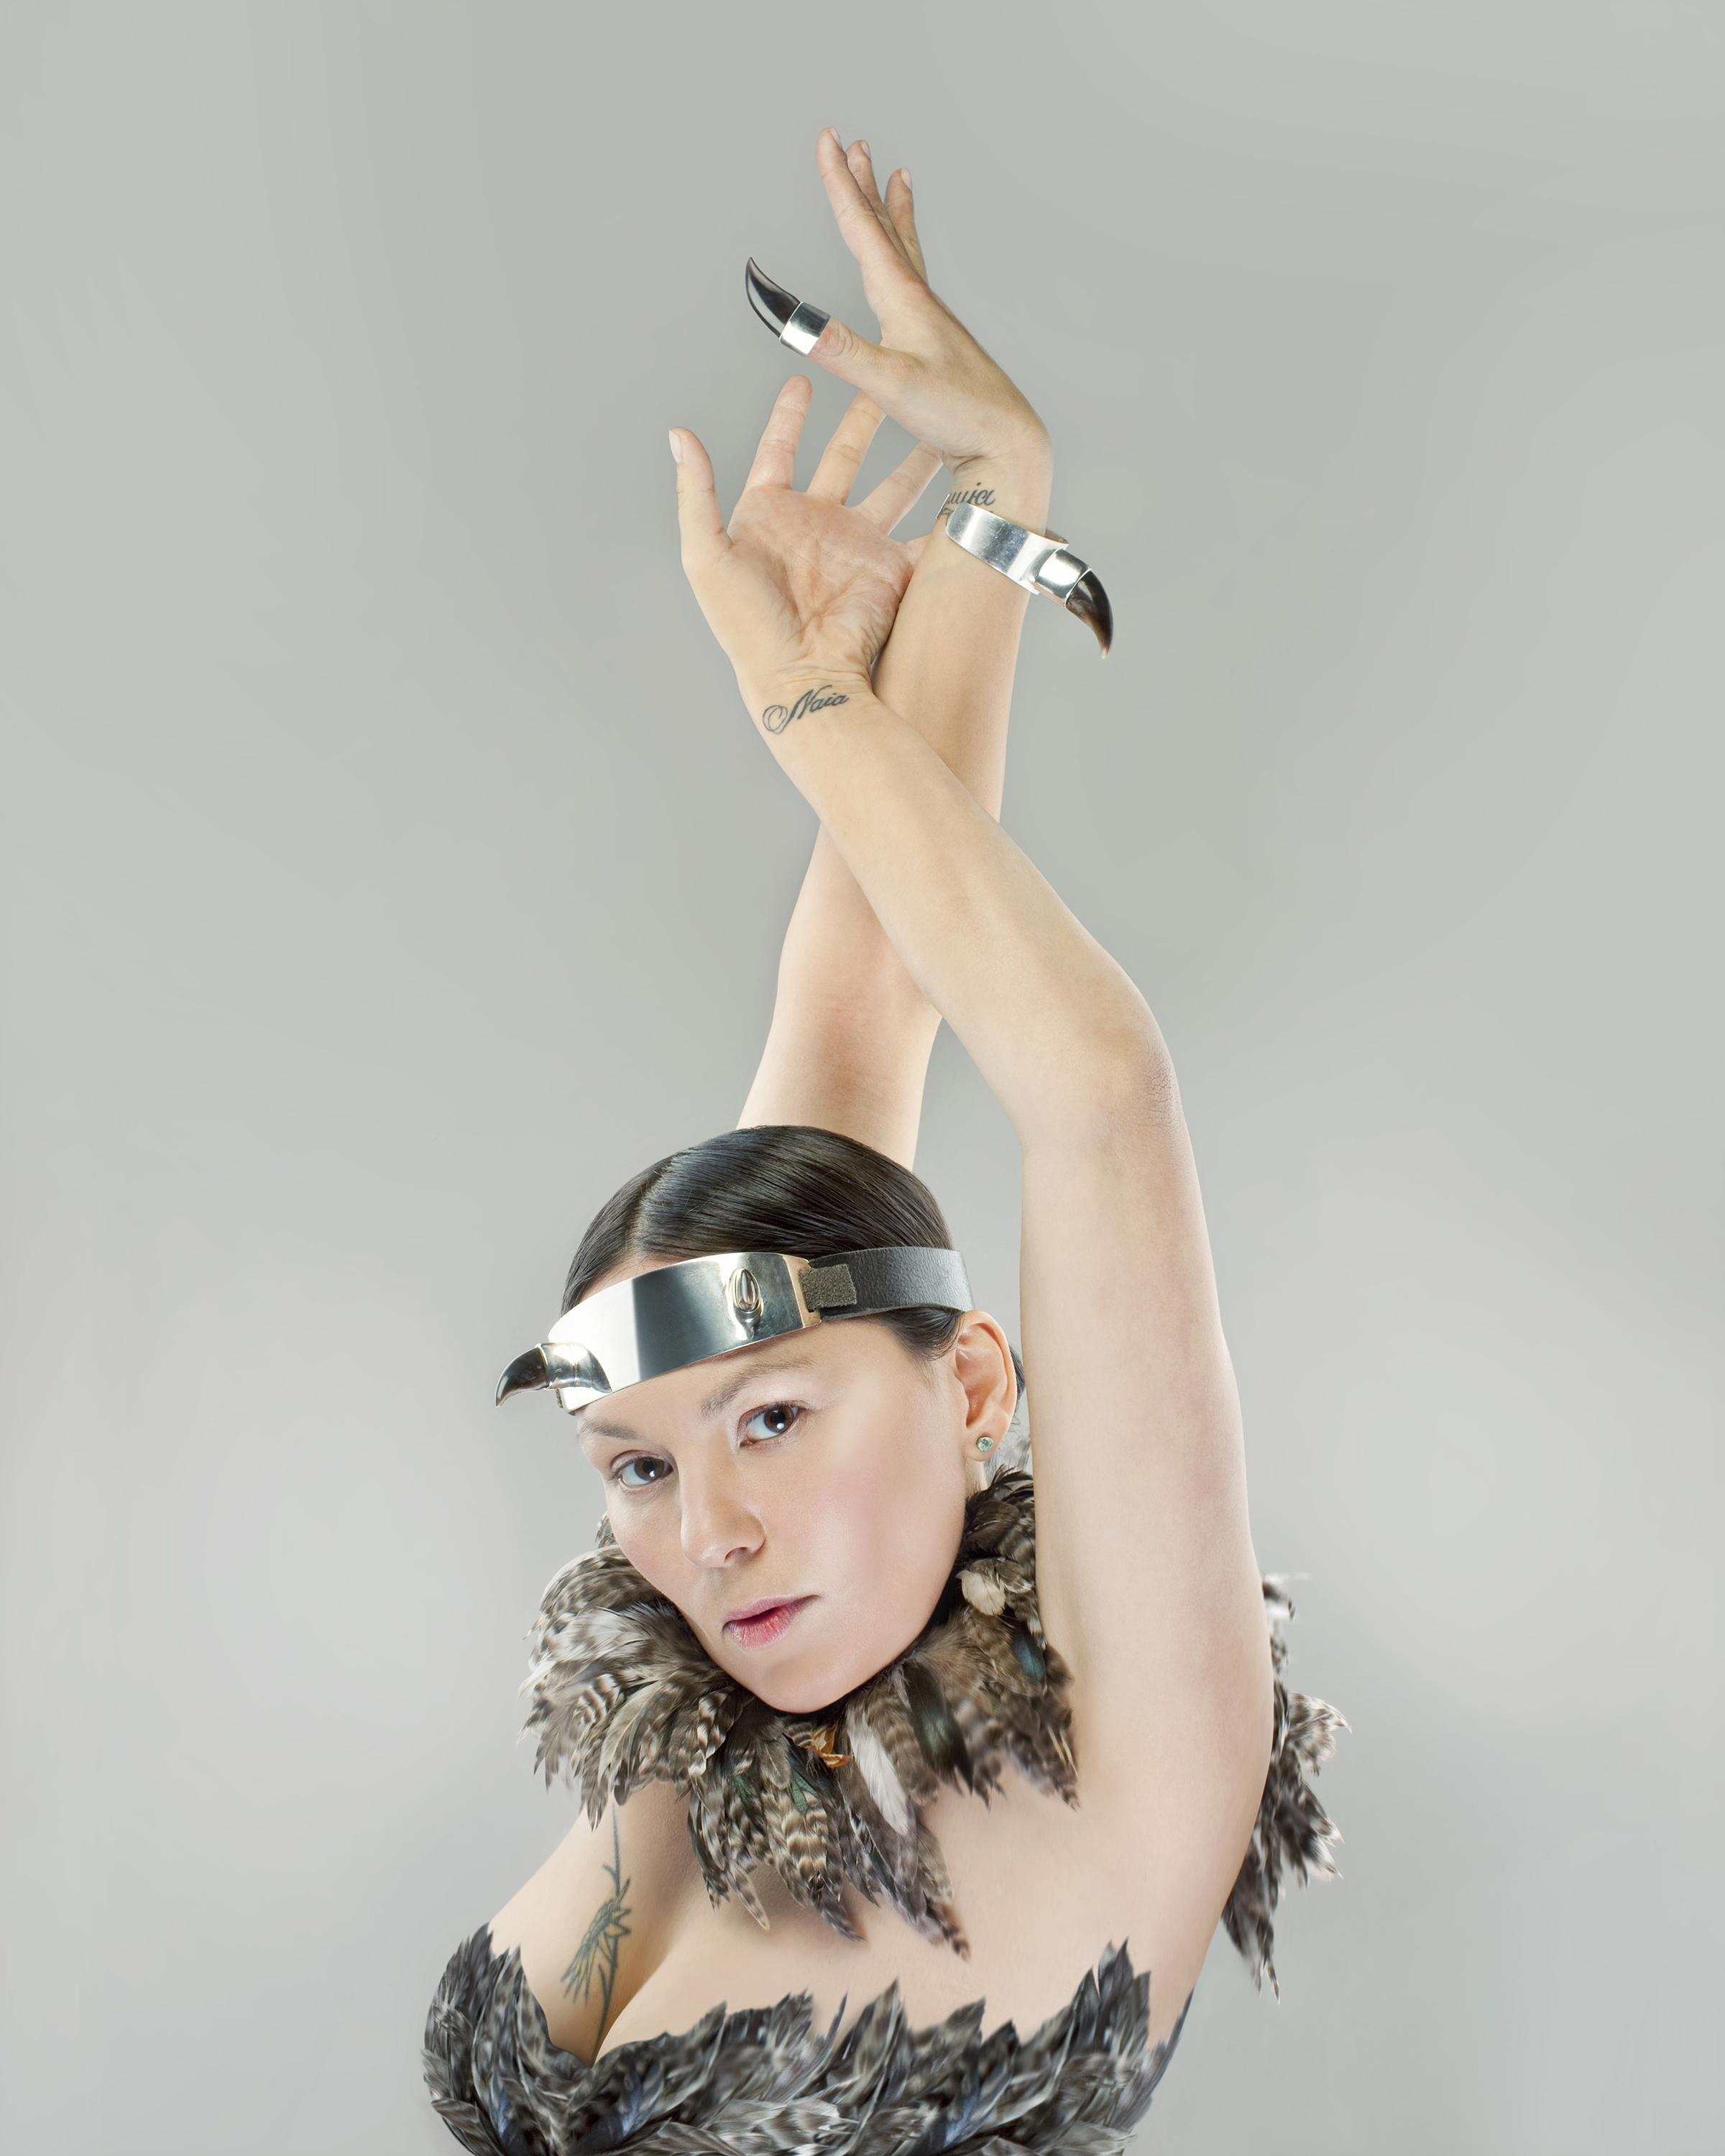 A woman posing, hands above head like a dancer, in feather garments and claw-like accessories